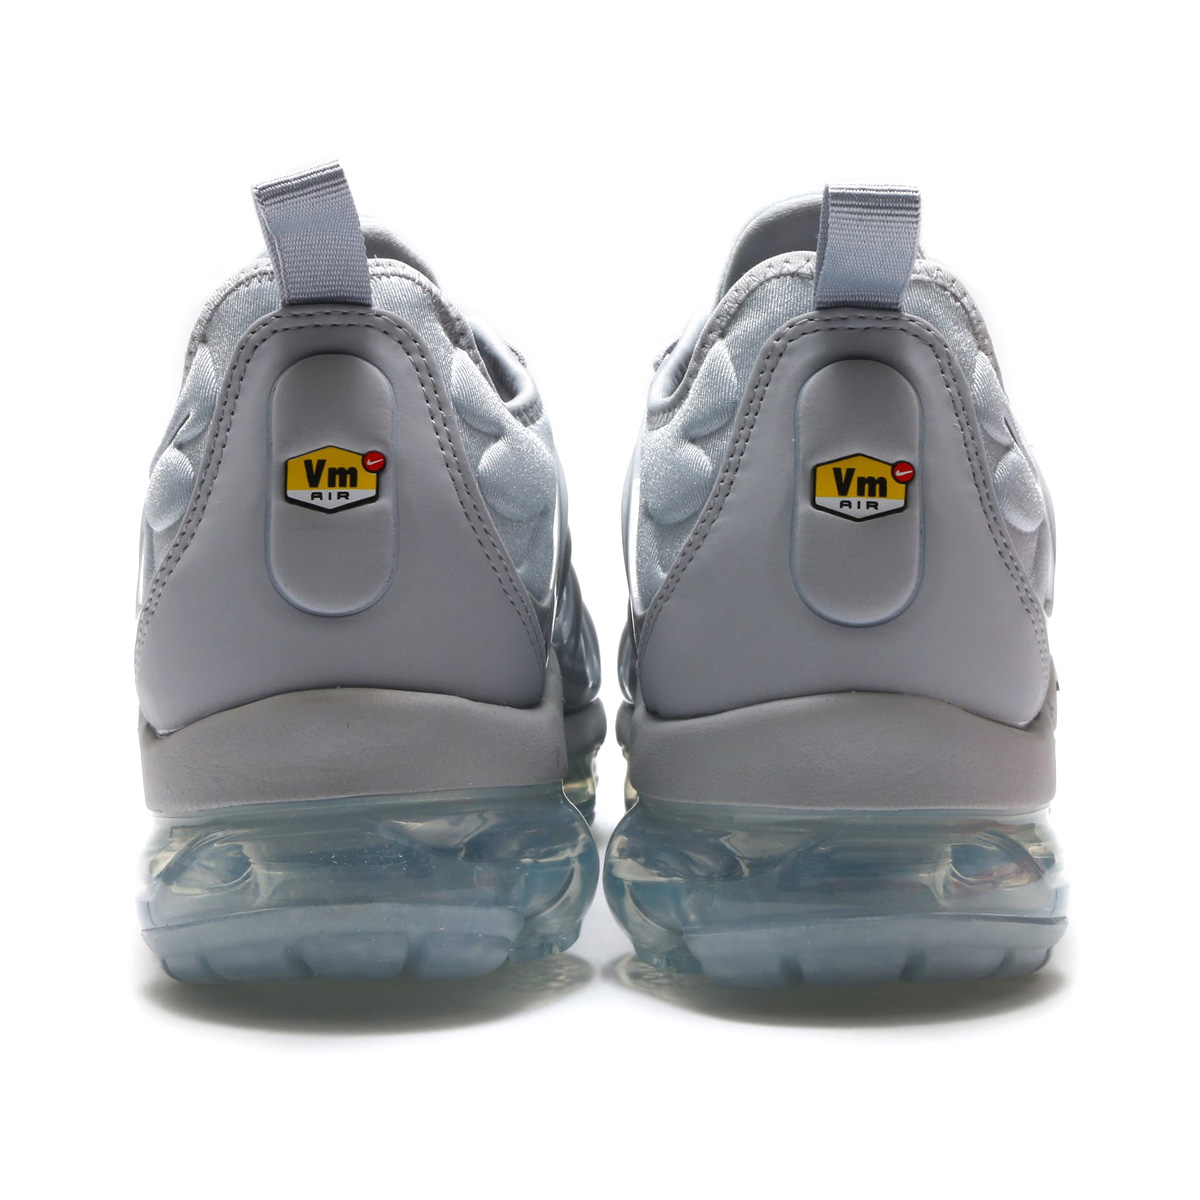 3c78a3a68feff0 ... low price nike air vapormax plus nike air vapor max plus wolf grey dark  grey metallic